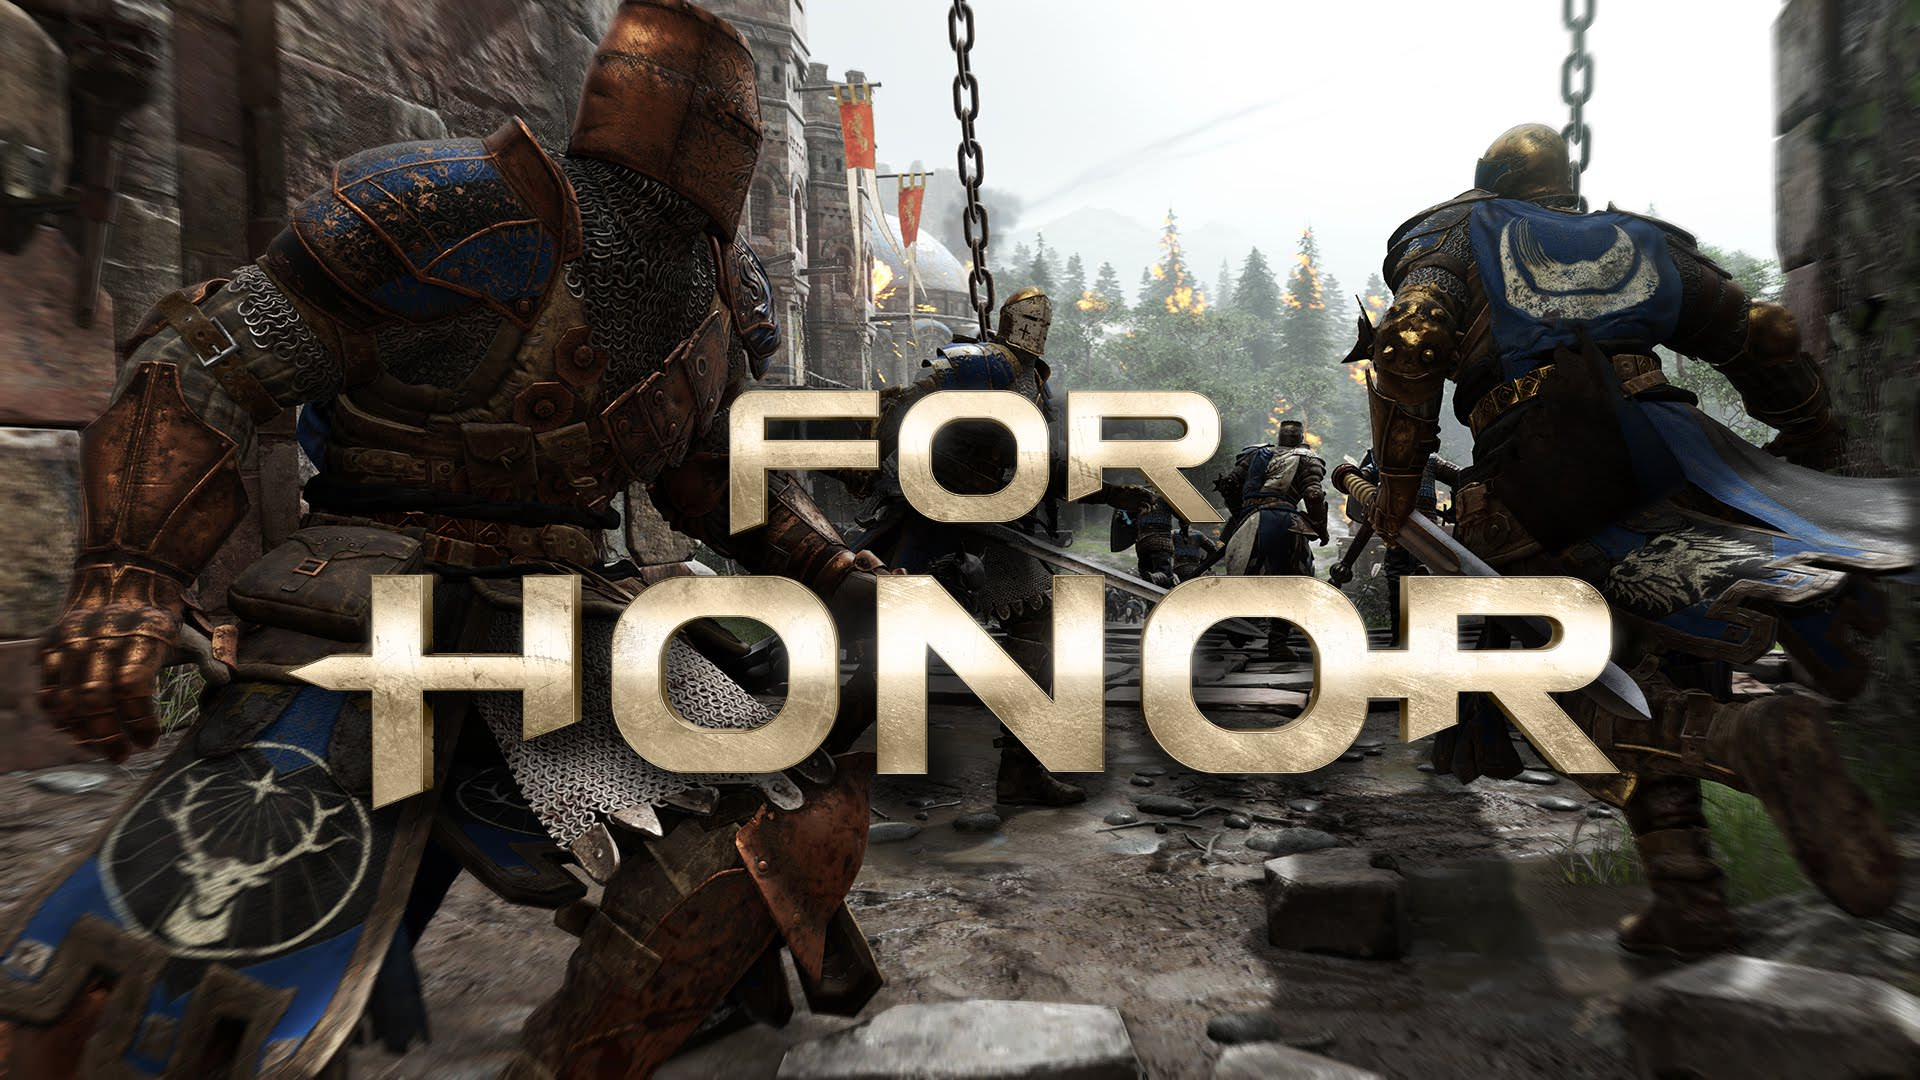 For Honor PC Requirements